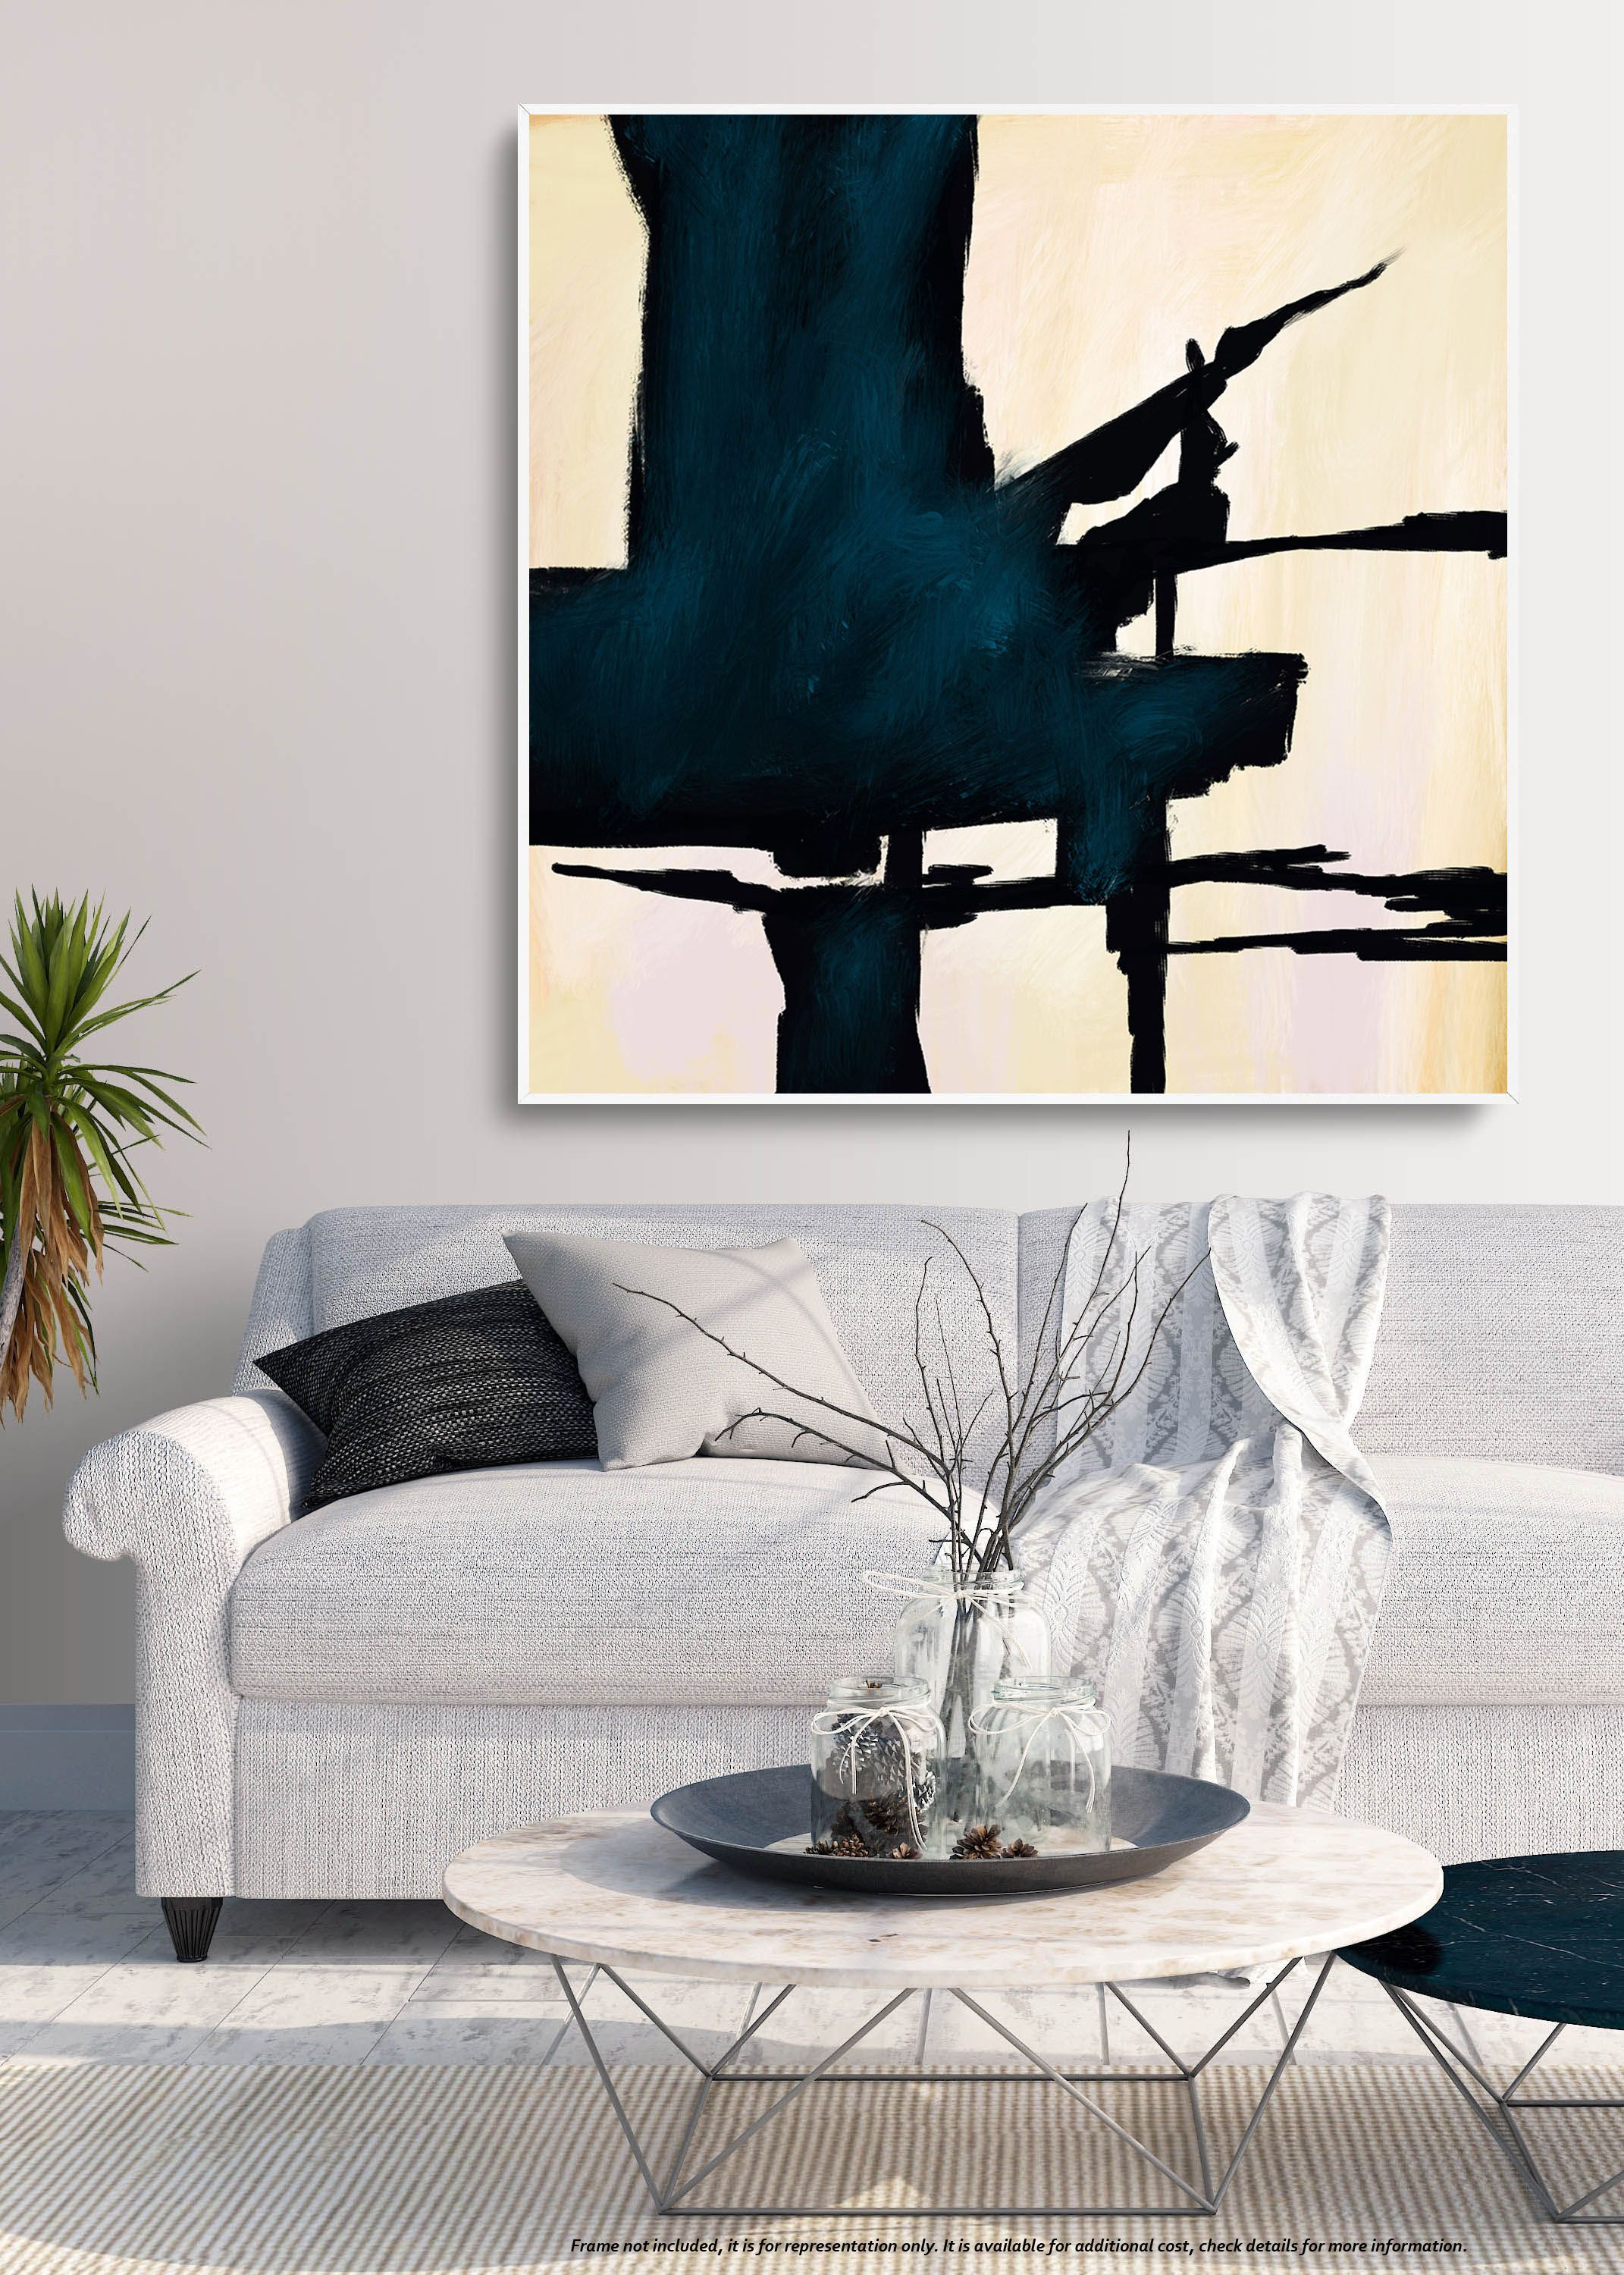 Abstract Canvas Art Large Painting On Canvas Contemporary Wall Art Original Oversize Painting Contemporary Wall Decor Huge Wall Art Large Modern Wall Art